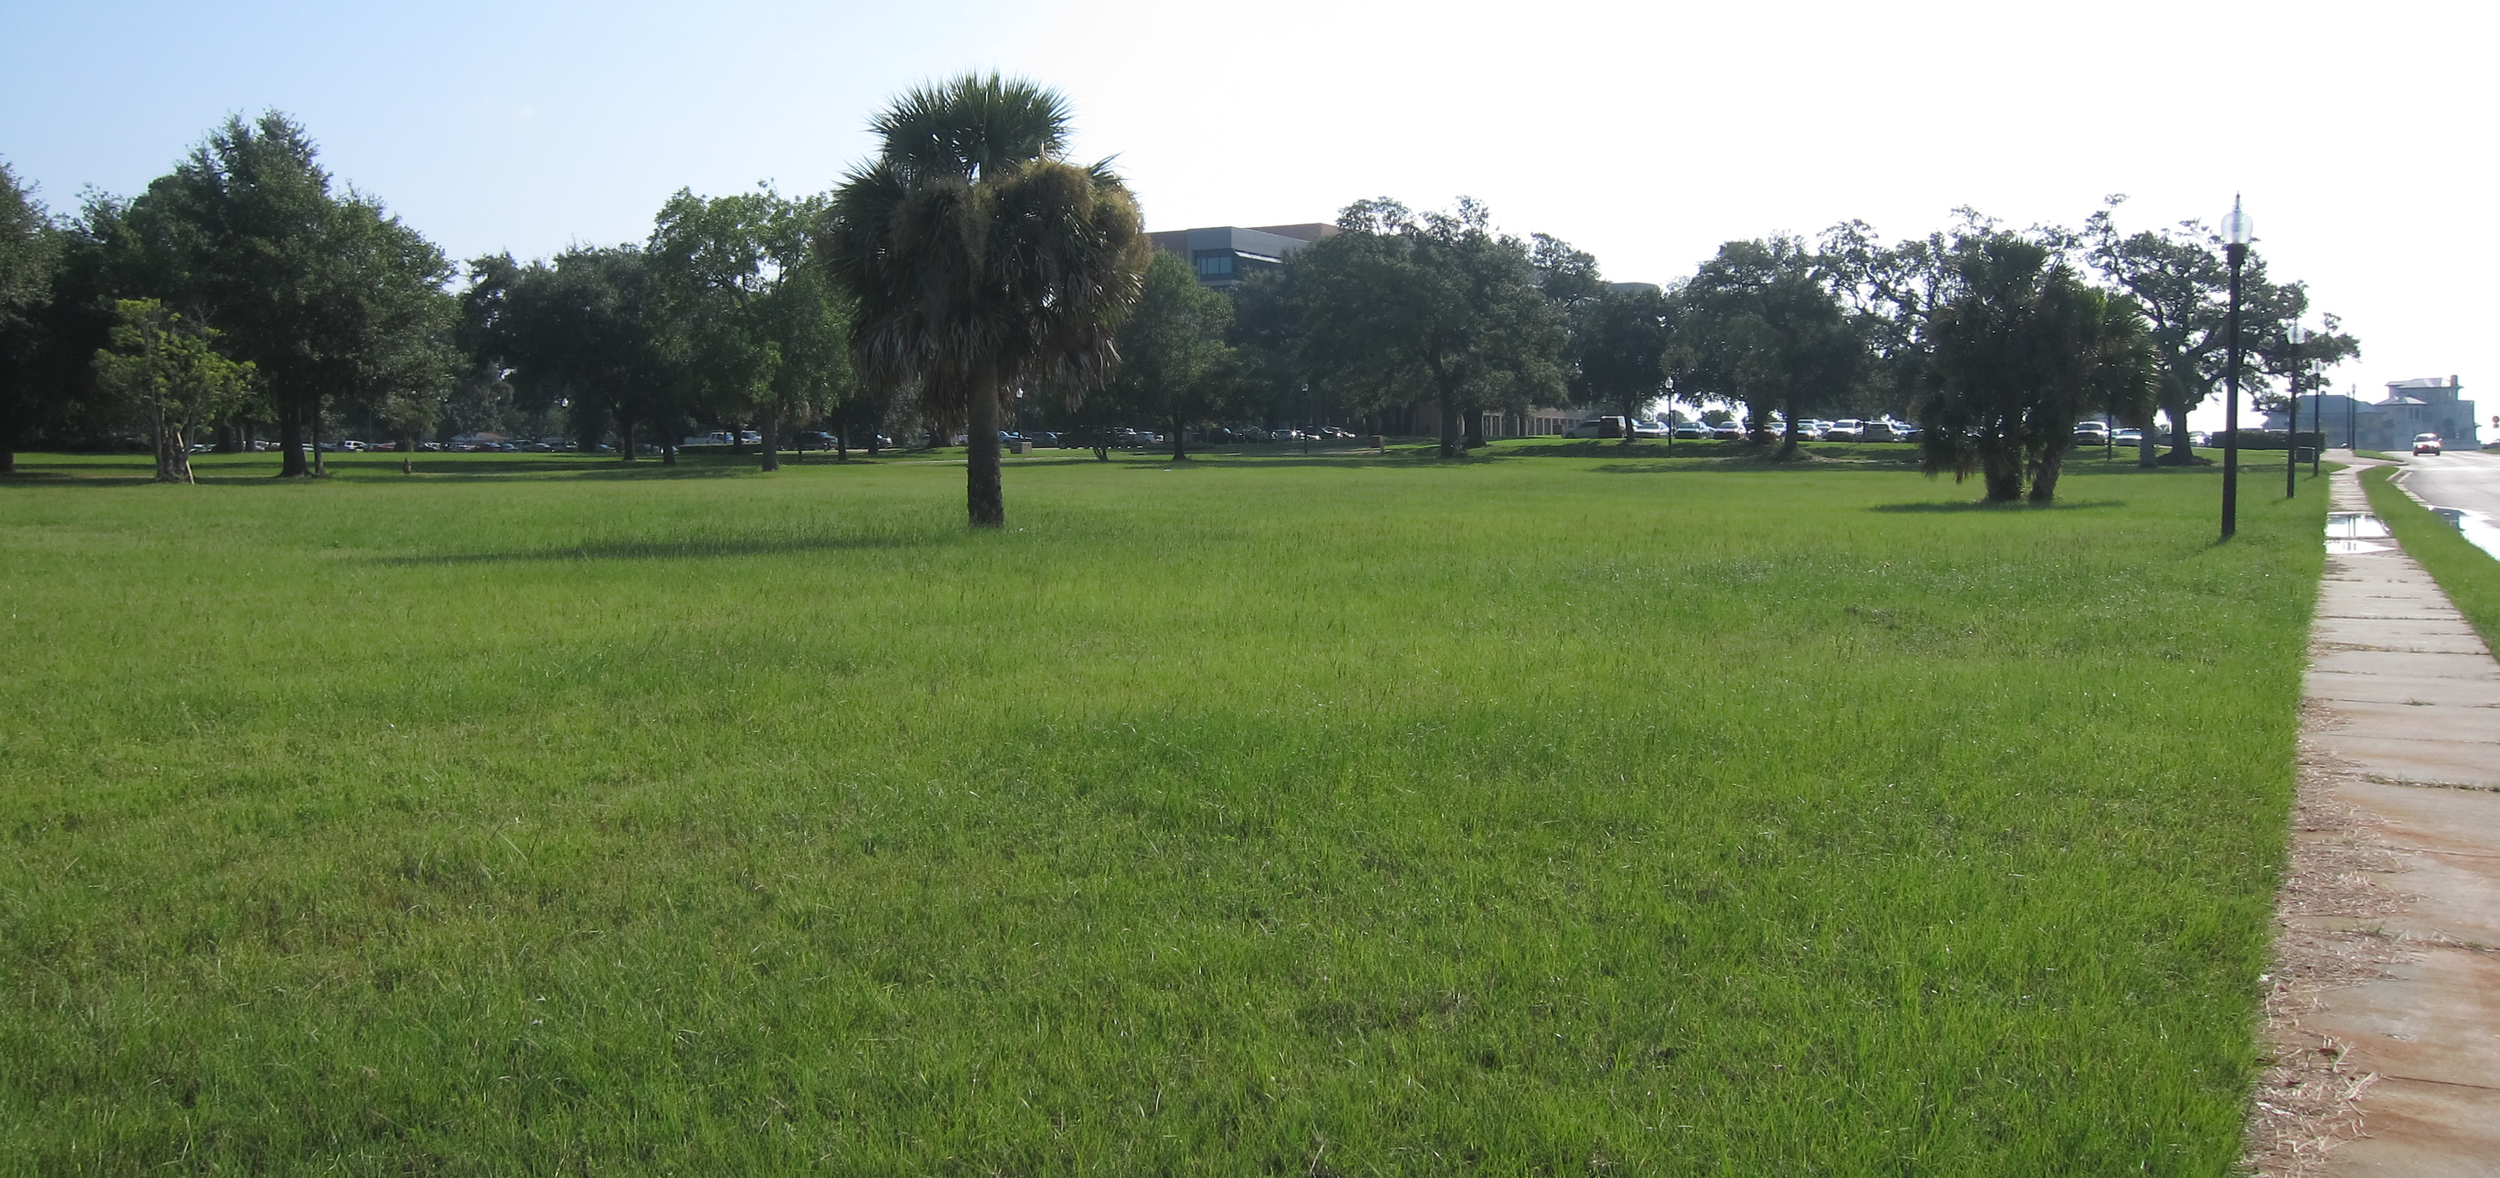 The Hawkshaw property as seen facing the Gulf Power building.